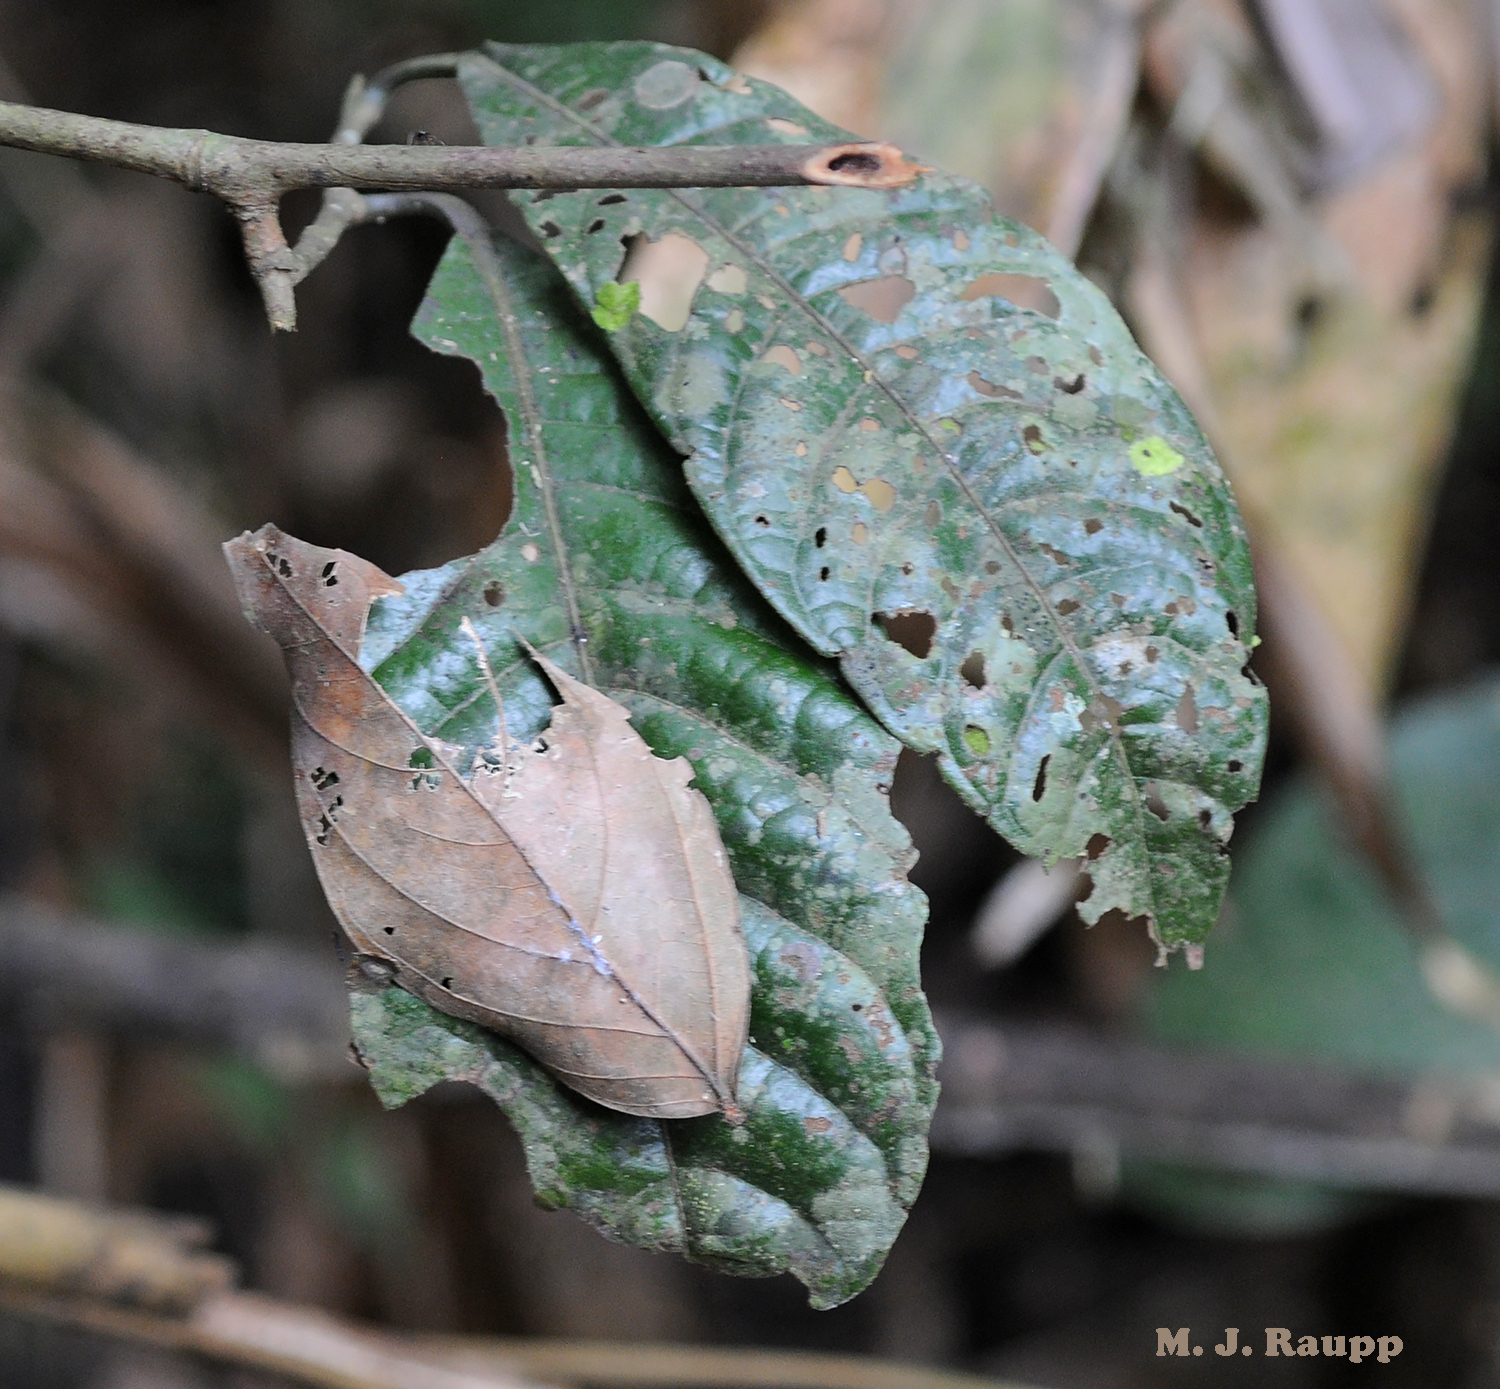 Throughout the rainforest, fallen dead leaves comingle with living ones and provide an opportunity for cryptic insects to blend in with their environment to escape the jaws of hungry predators.